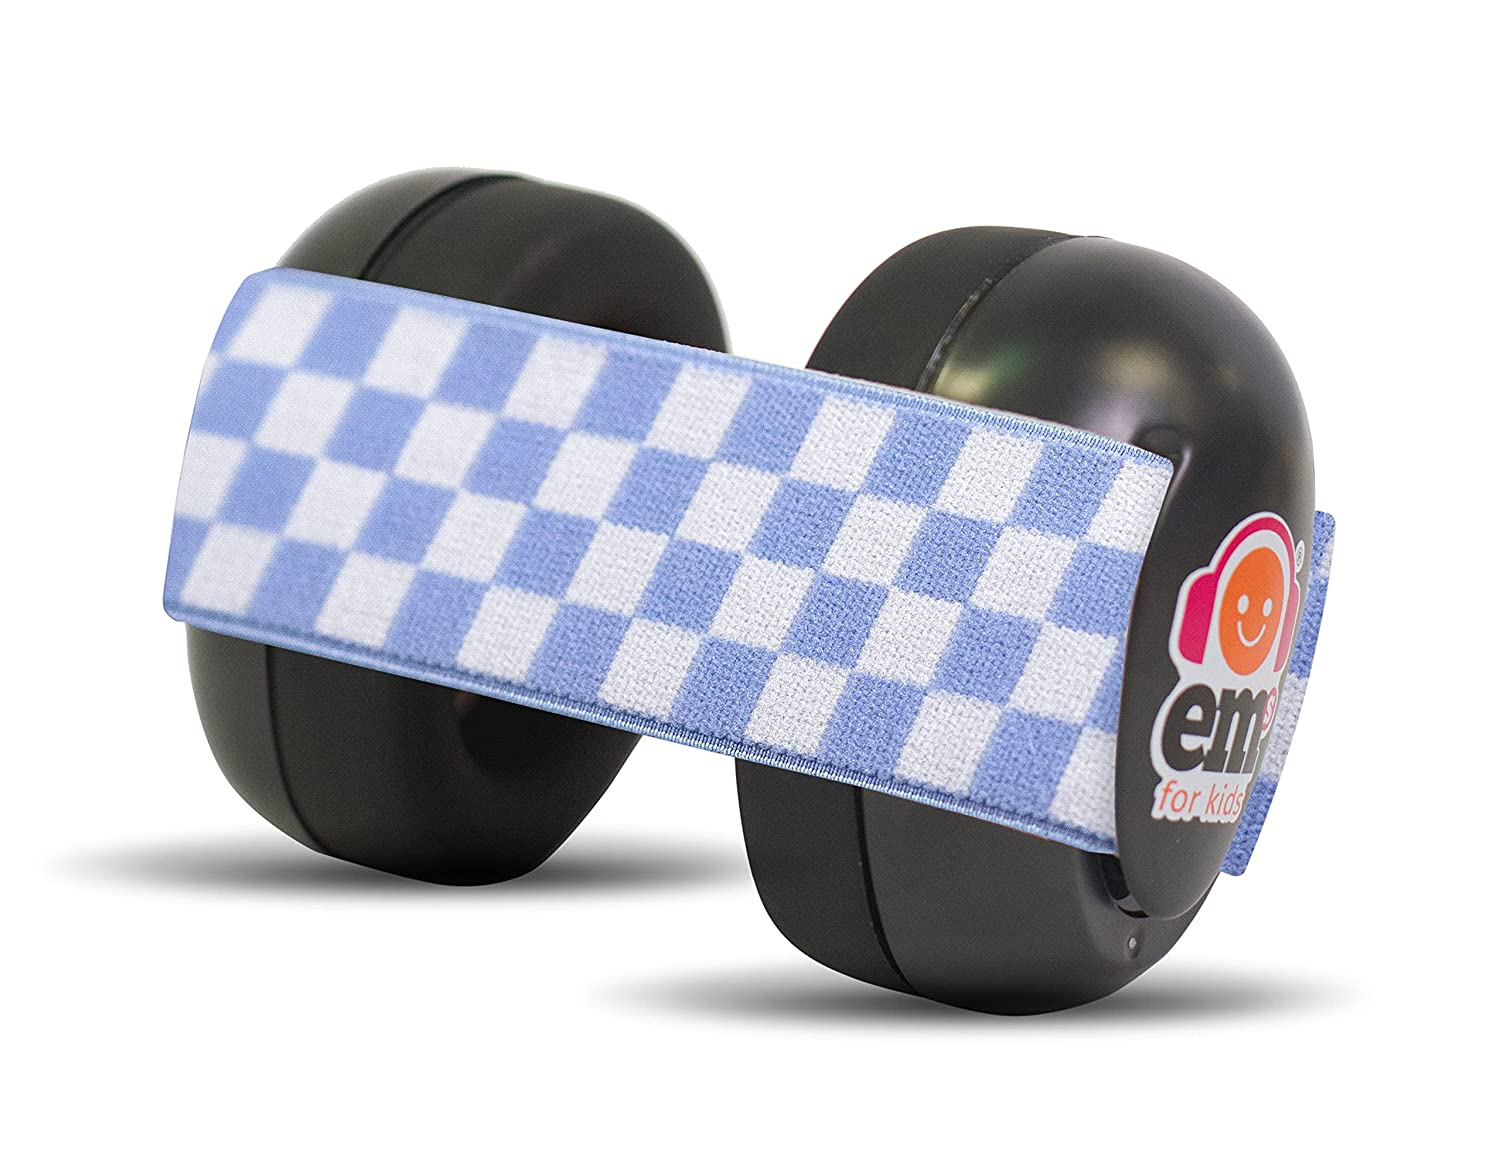 Ems for Kids Baby Earmuffs - BLACK with Blue/White. The original baby earmuffs, now MADE IN THE USA! Great for concerts, music festivals, planes, NASCAR, motor racing, power tools and MORE!